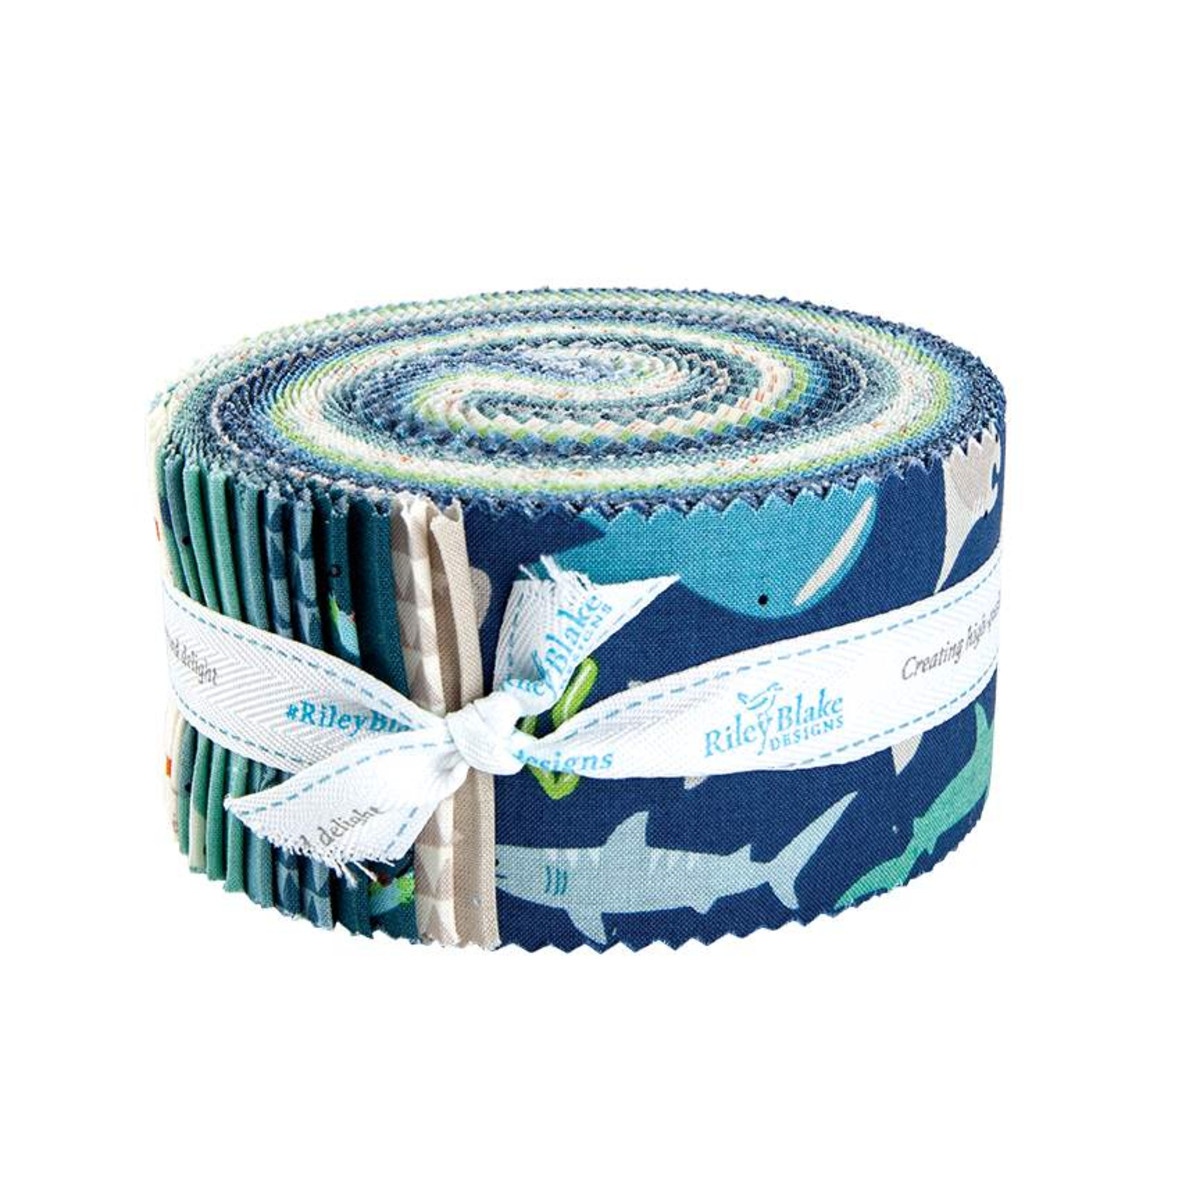 Riley Blake Jelly Roll - Riptide by Citrus & Mint Designs